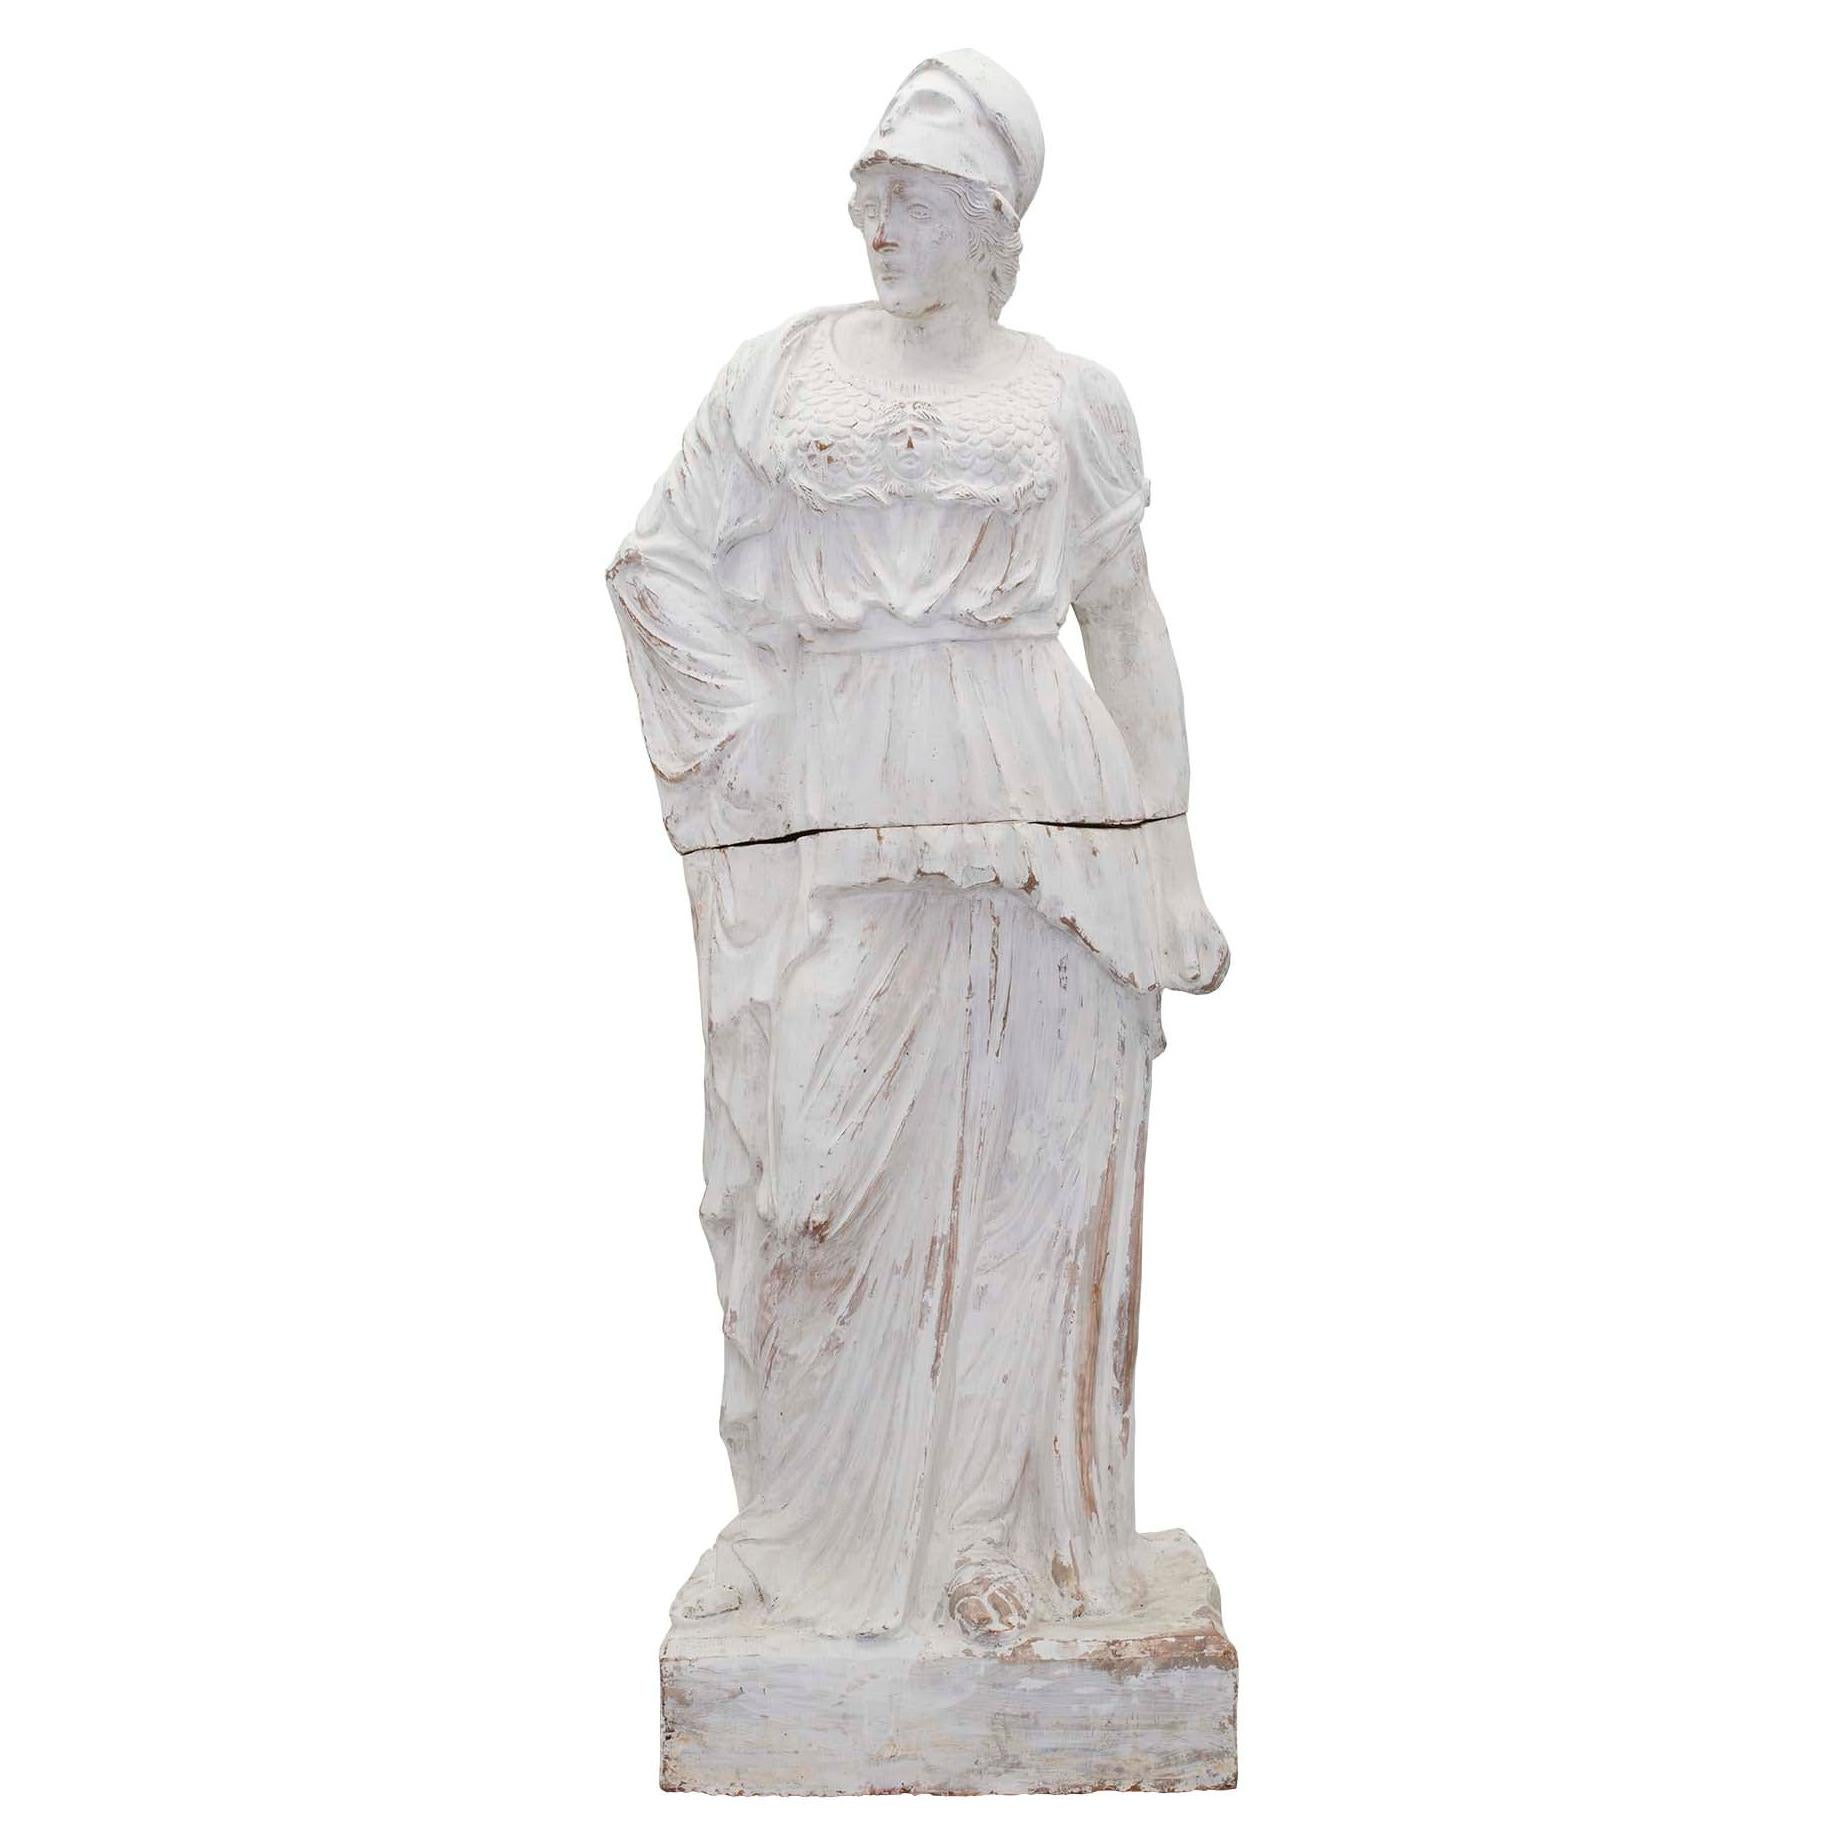 French 19th Century Patinated Terracotta Statue of a Maiden